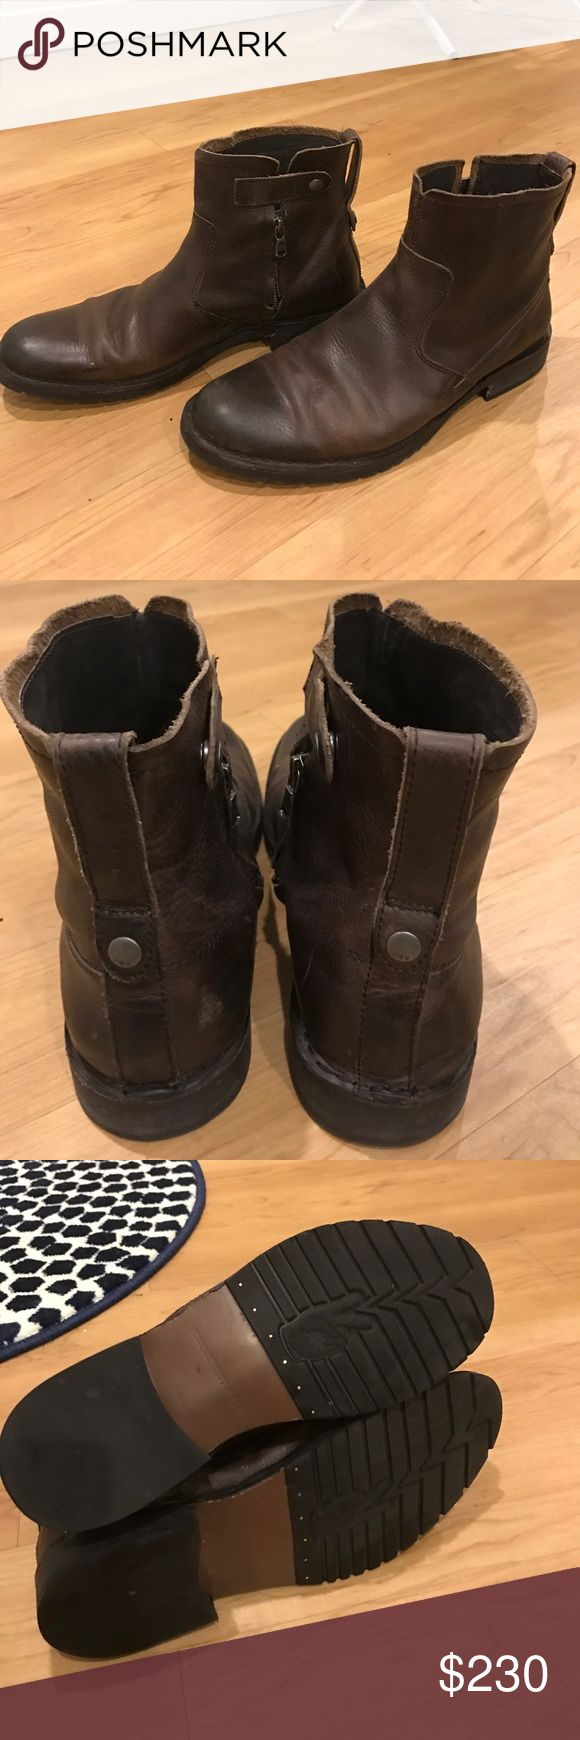 John Varvatos Brown Leather Boots - Mens John Varvatos Brown Leather Boots.  Only worn a few times. In great condition. John Varvatos Shoes Boots